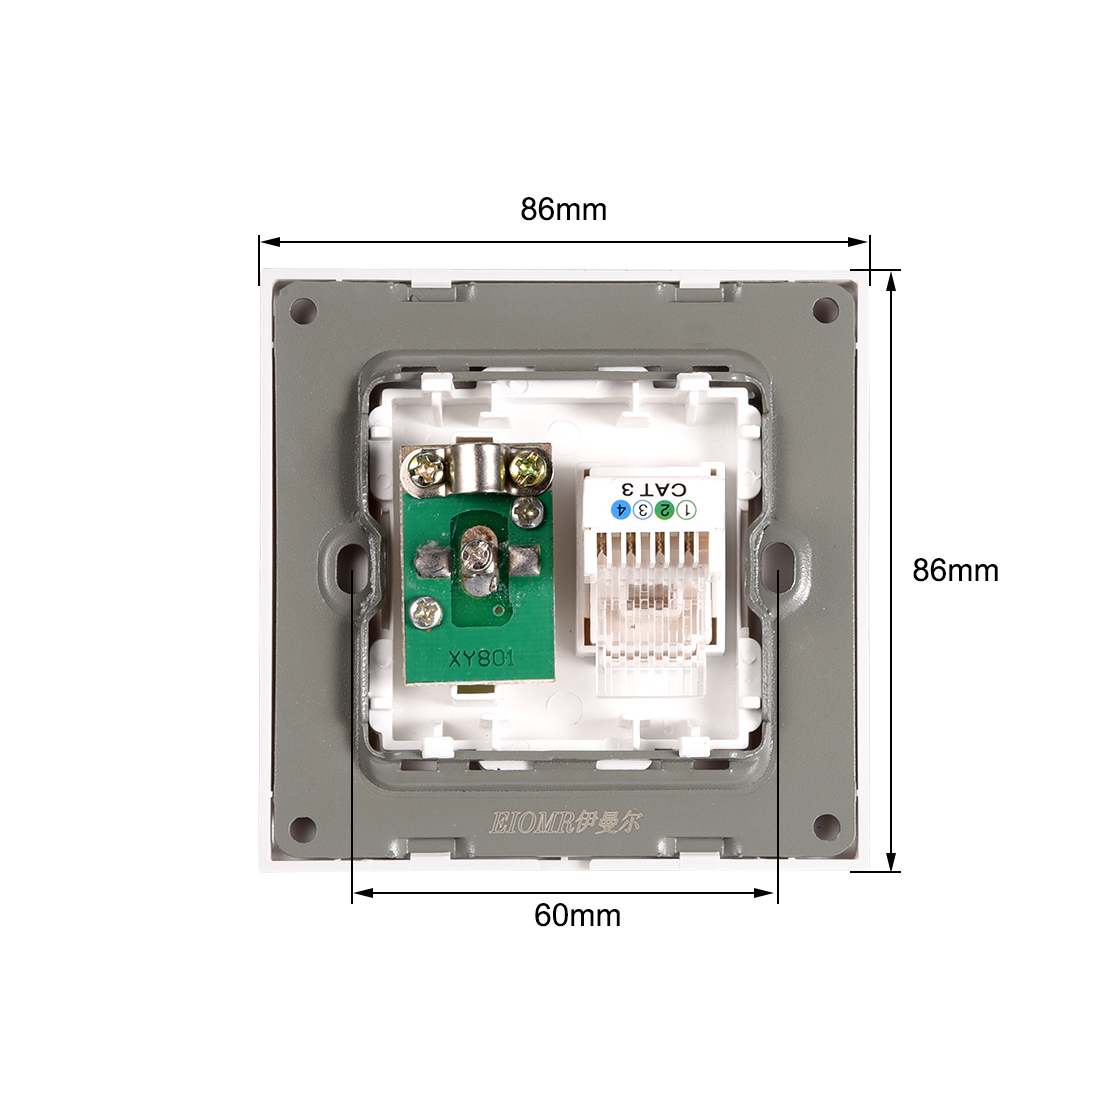 RJ11 Telephone TV Aerial Double Ports Socket Wall Plate Panel 86 Type - image 2 of 3